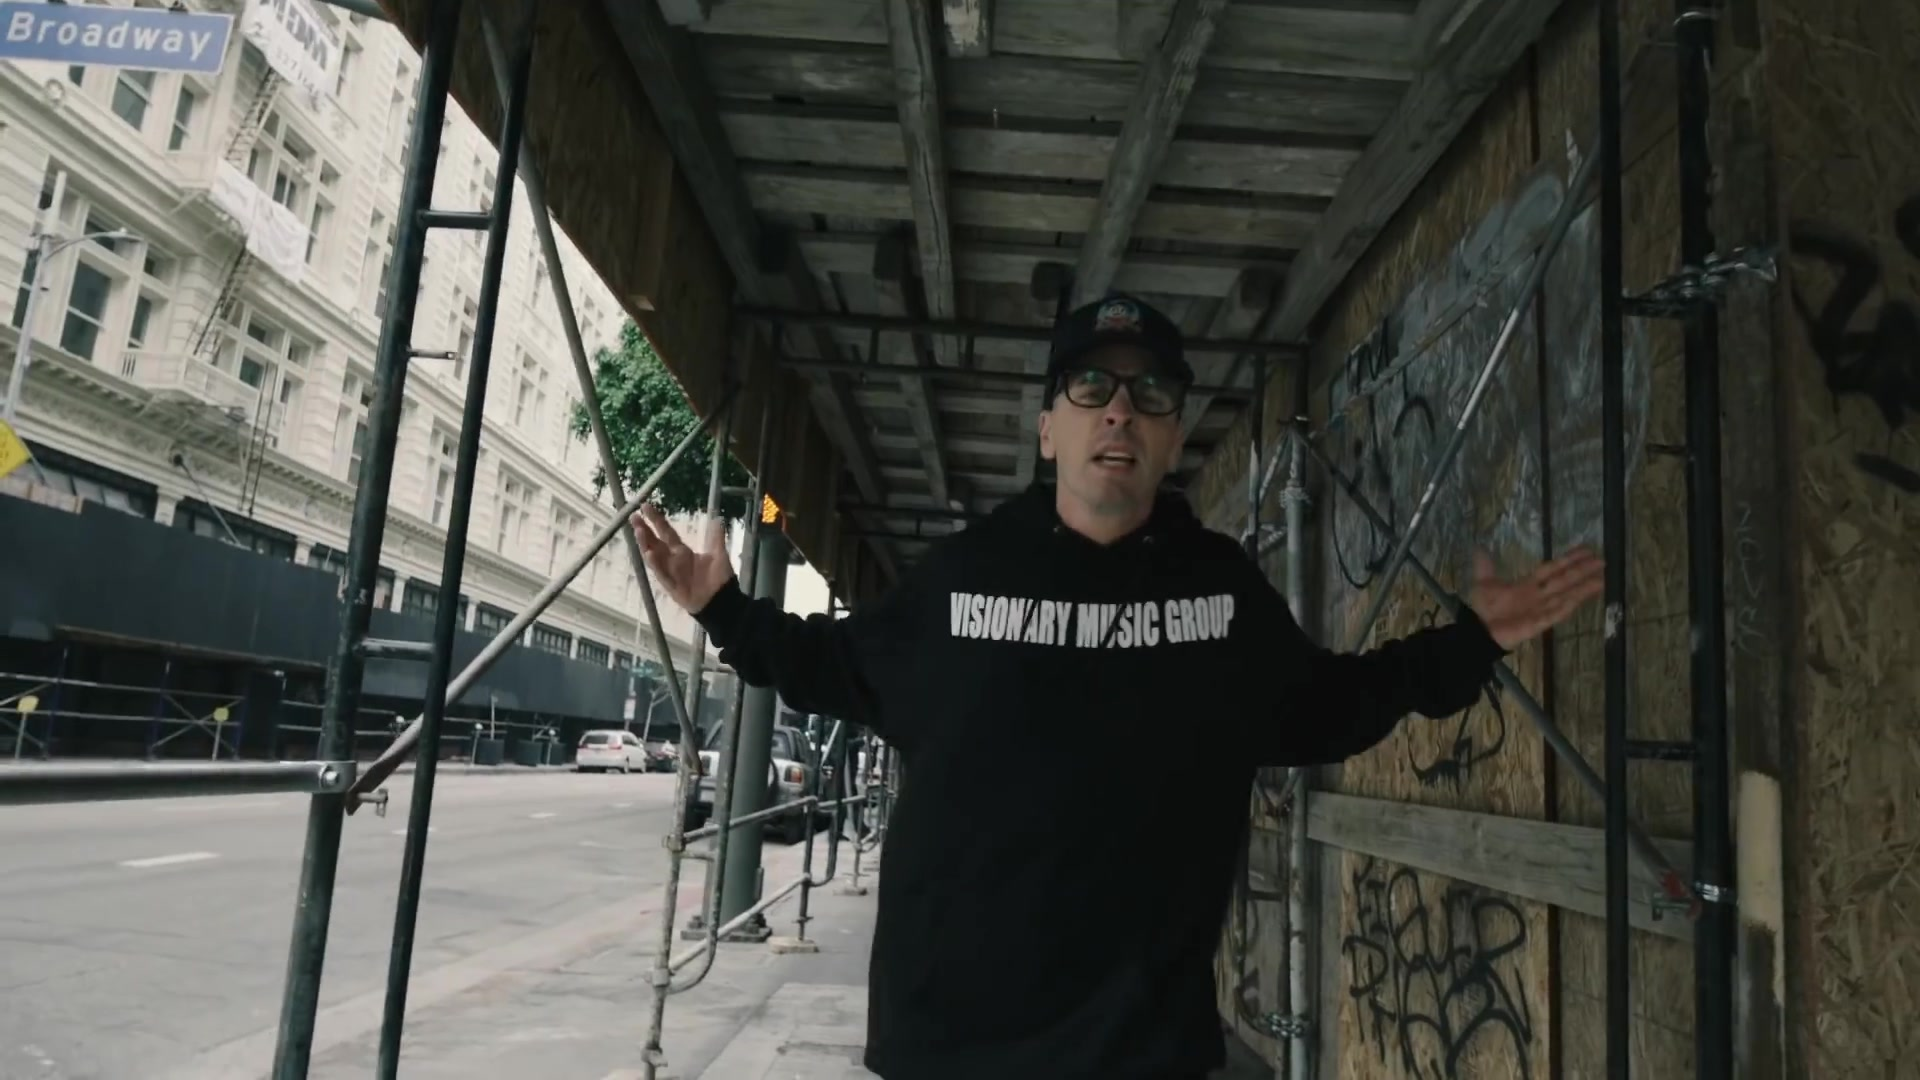 Visionary Music Group Record Label Hoodie Worn by Logic in